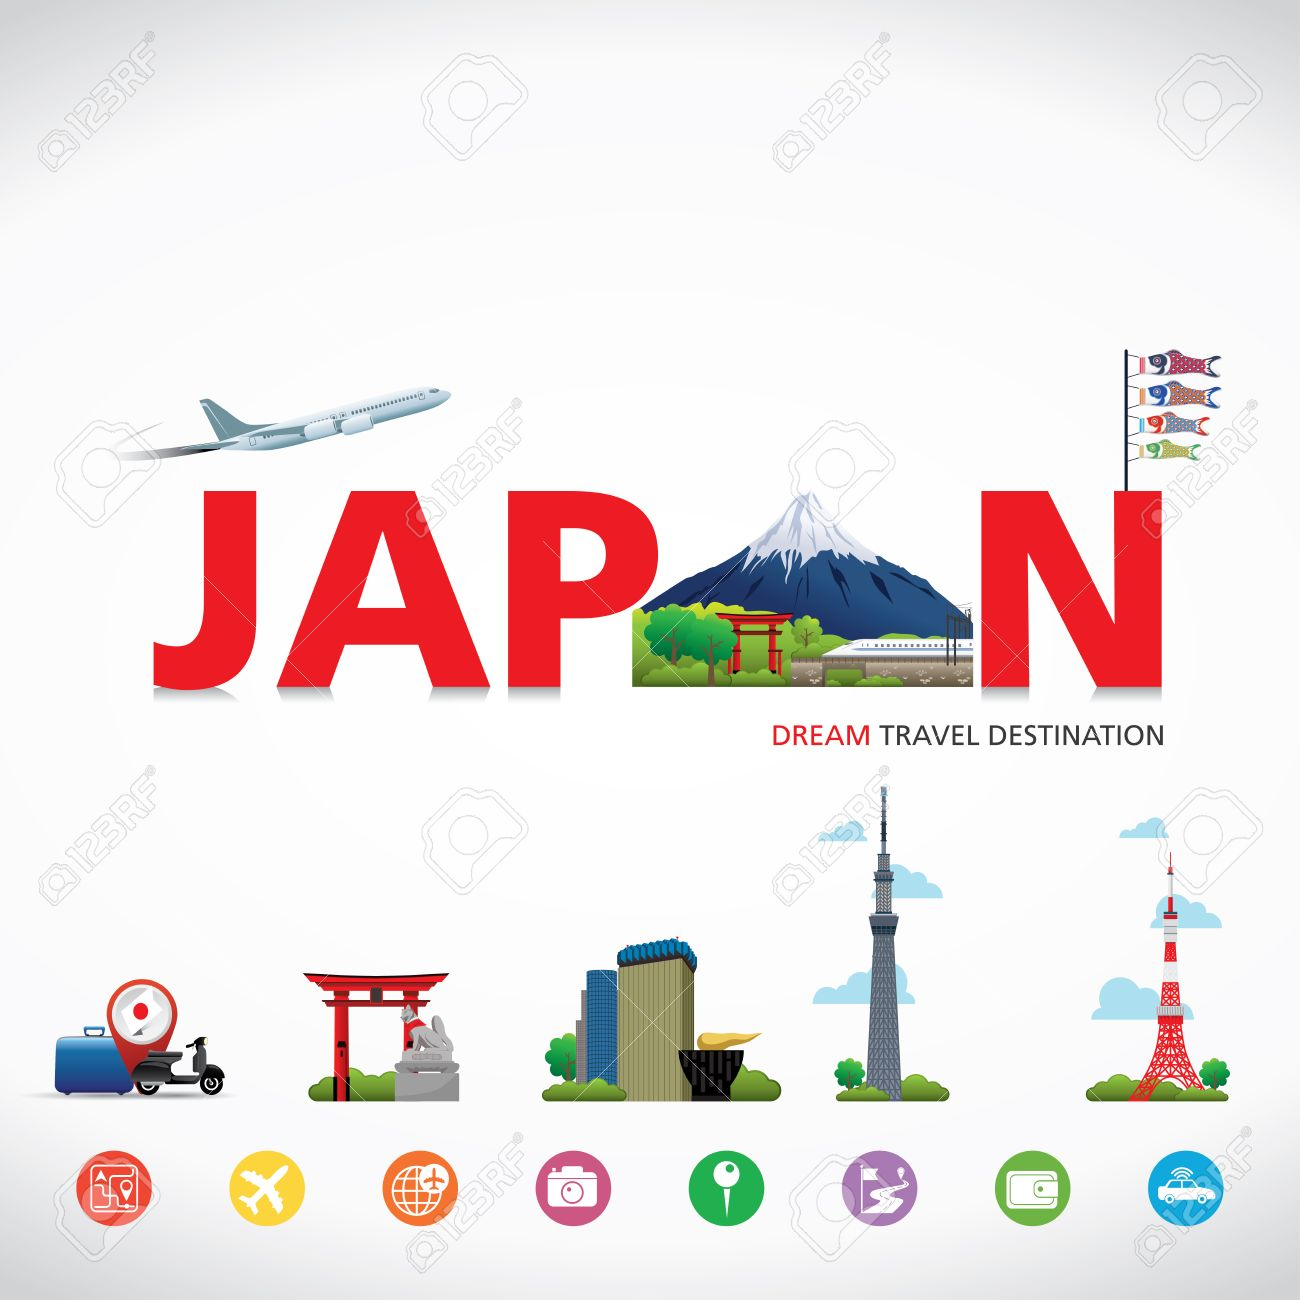 Japan Vector Travel Destinations Icon Set Info Graphic Elements For Traveling To Stock